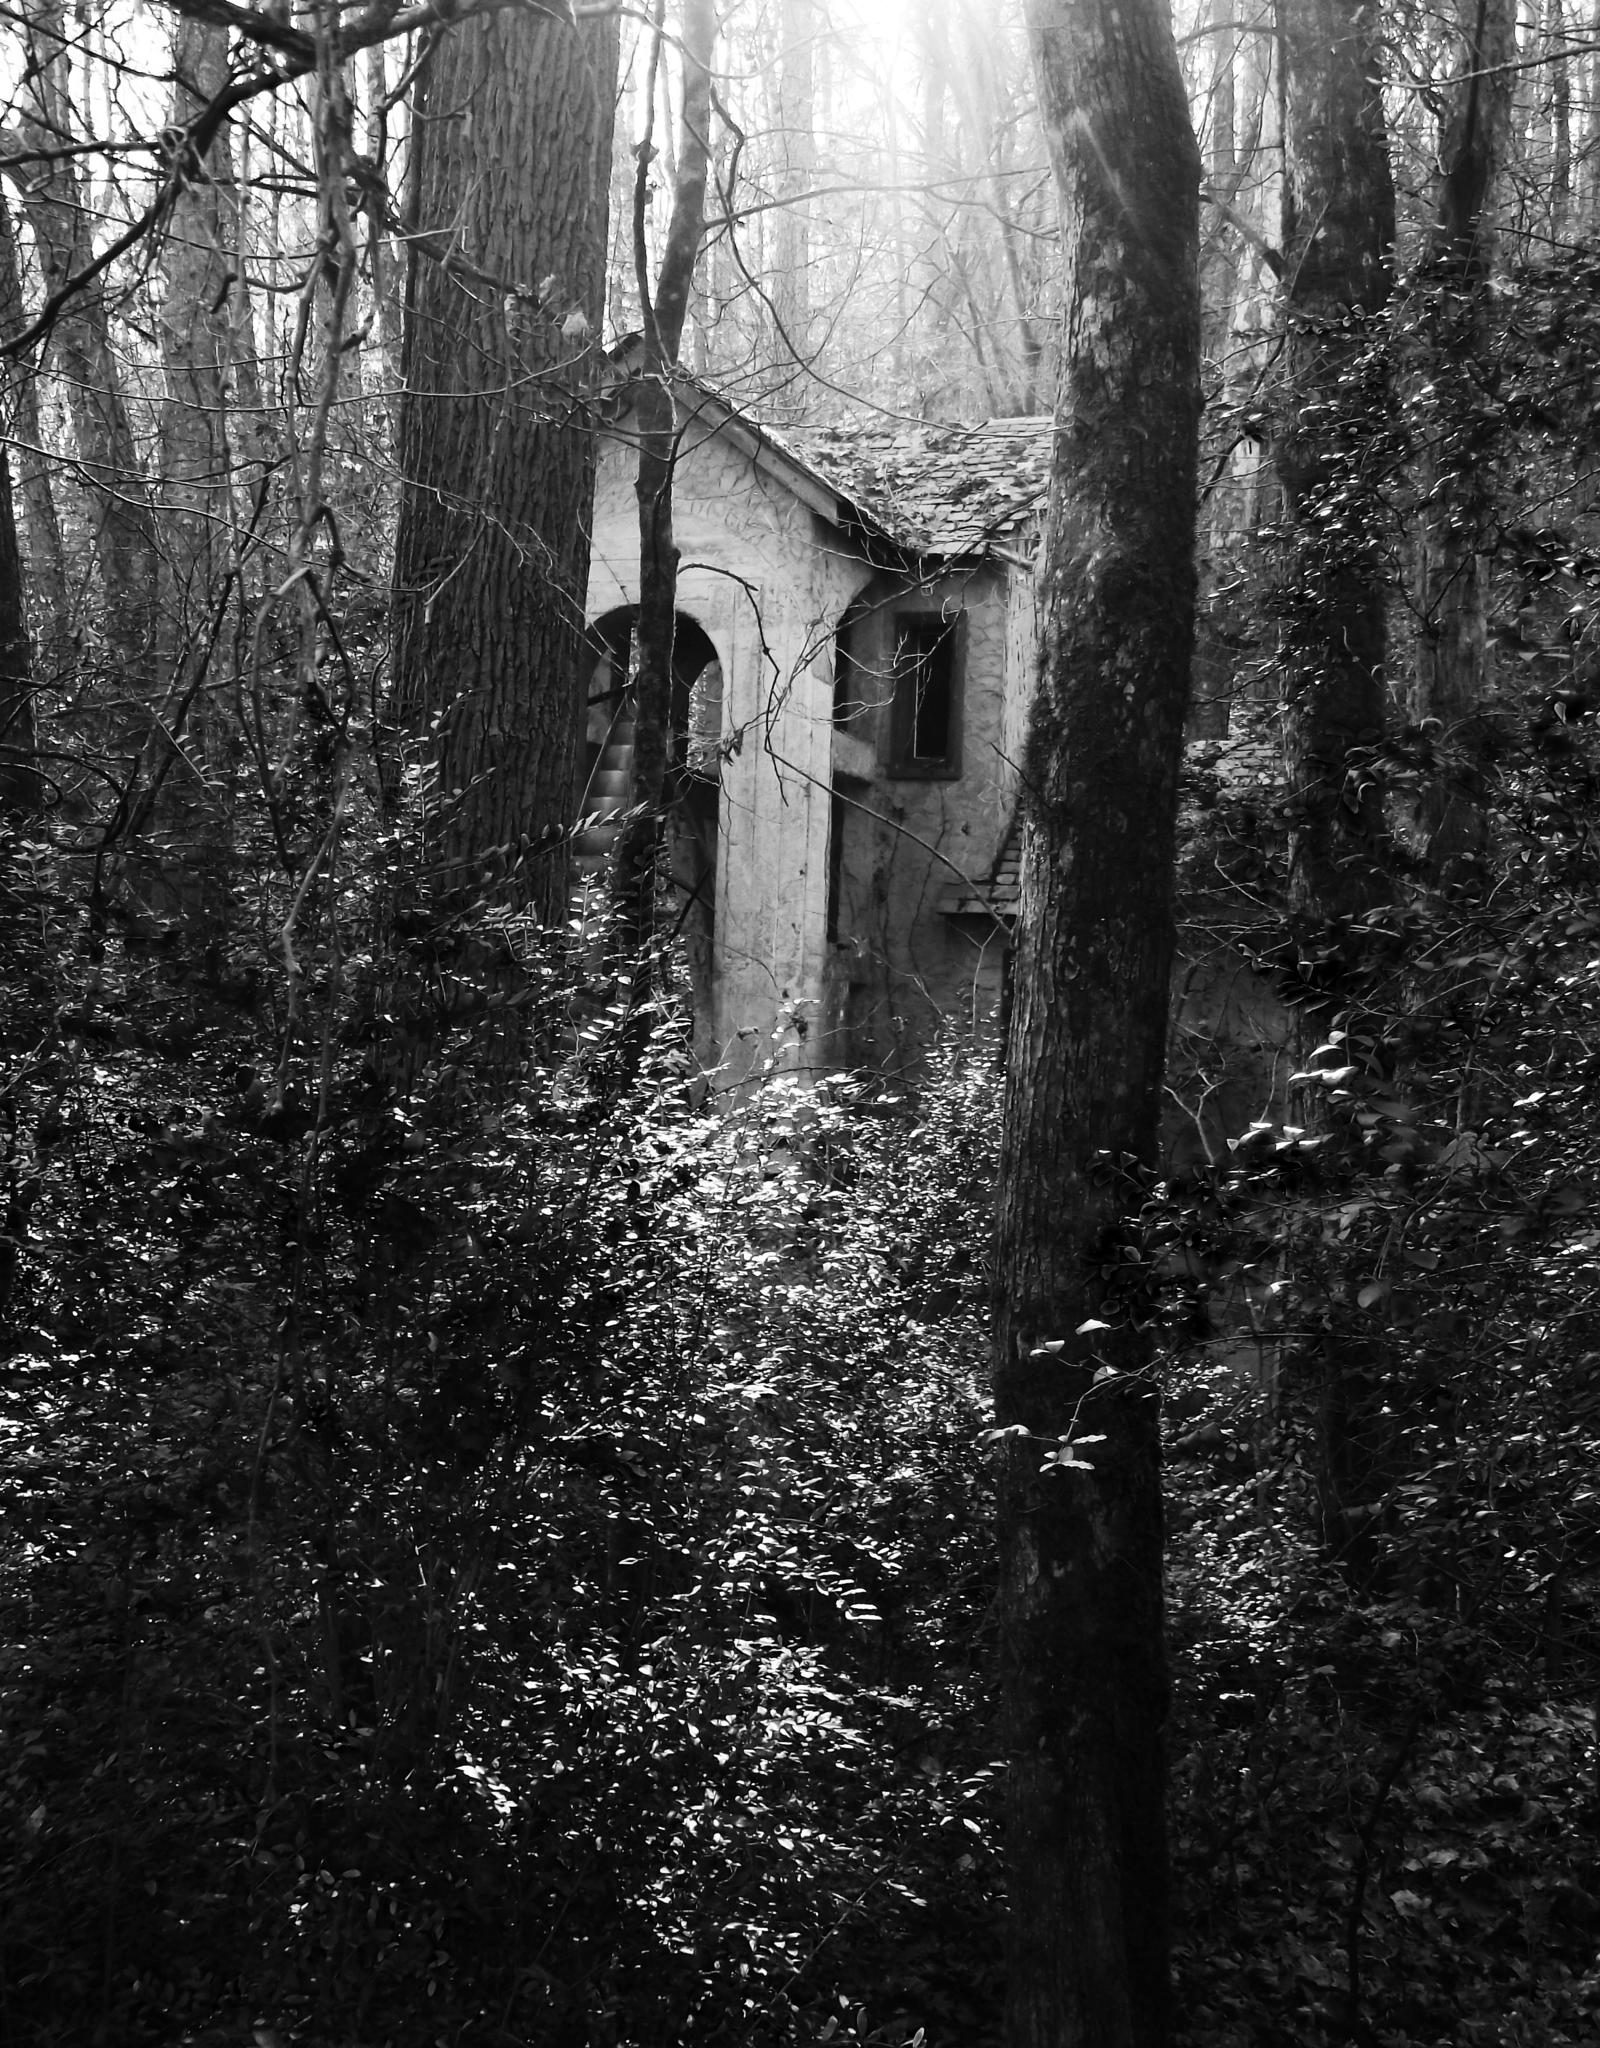 Tucked Away by Byrd's Eye Photography